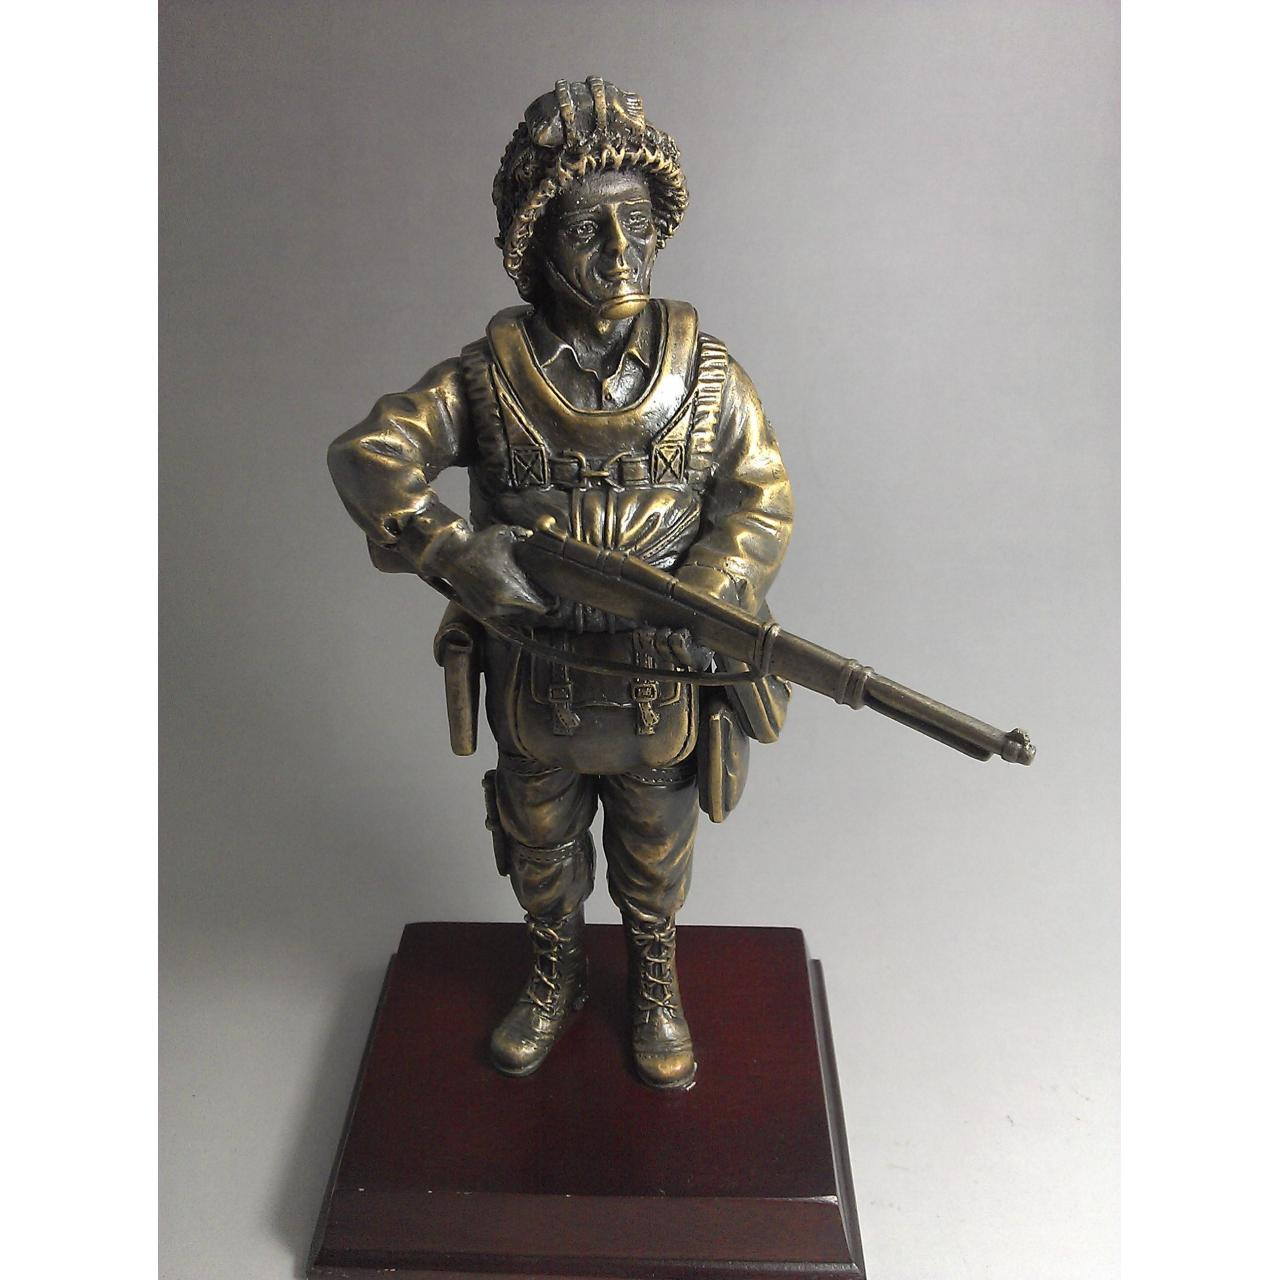 Cheap Pewter Figures are 18cm model wholesale